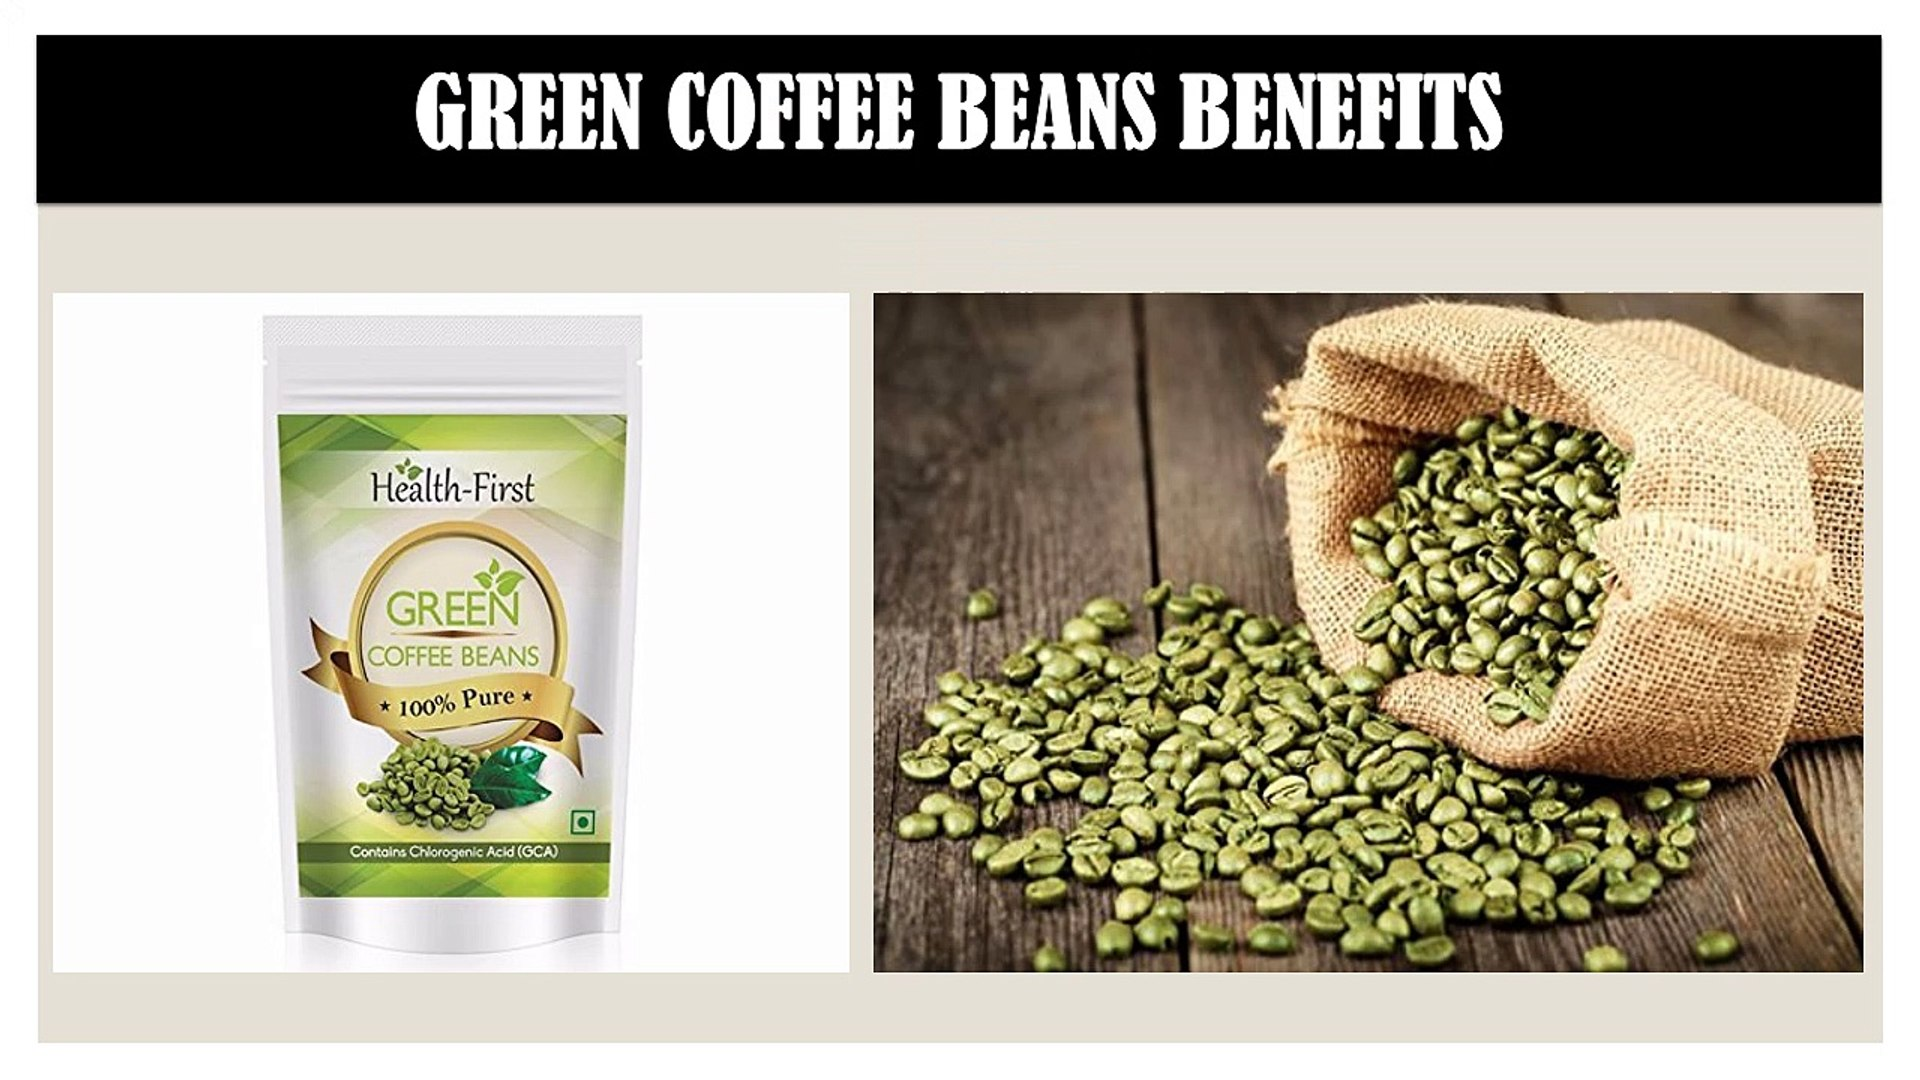 Weight Loss Health Product Green Coffee Beans Online Video